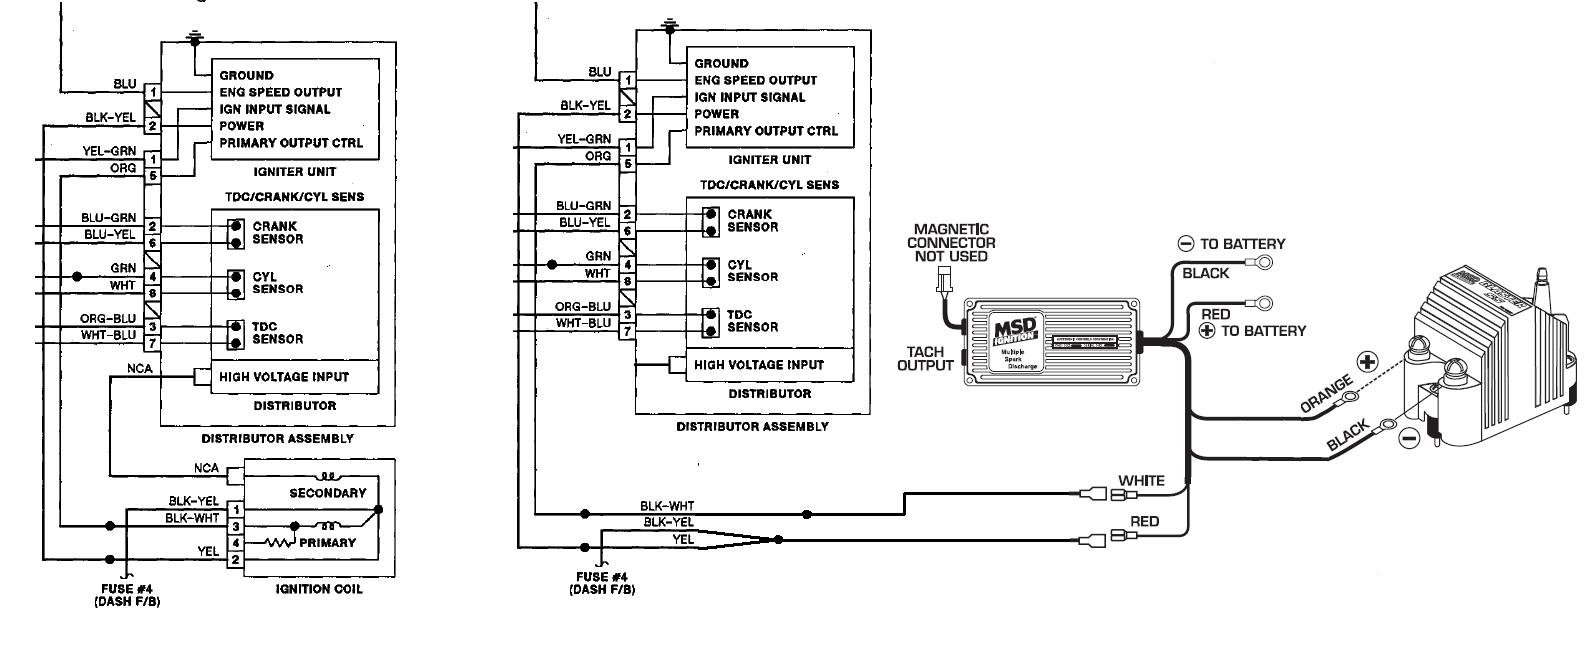 Msd Coil Wiring Diagram : Msd al wiring diagram  images